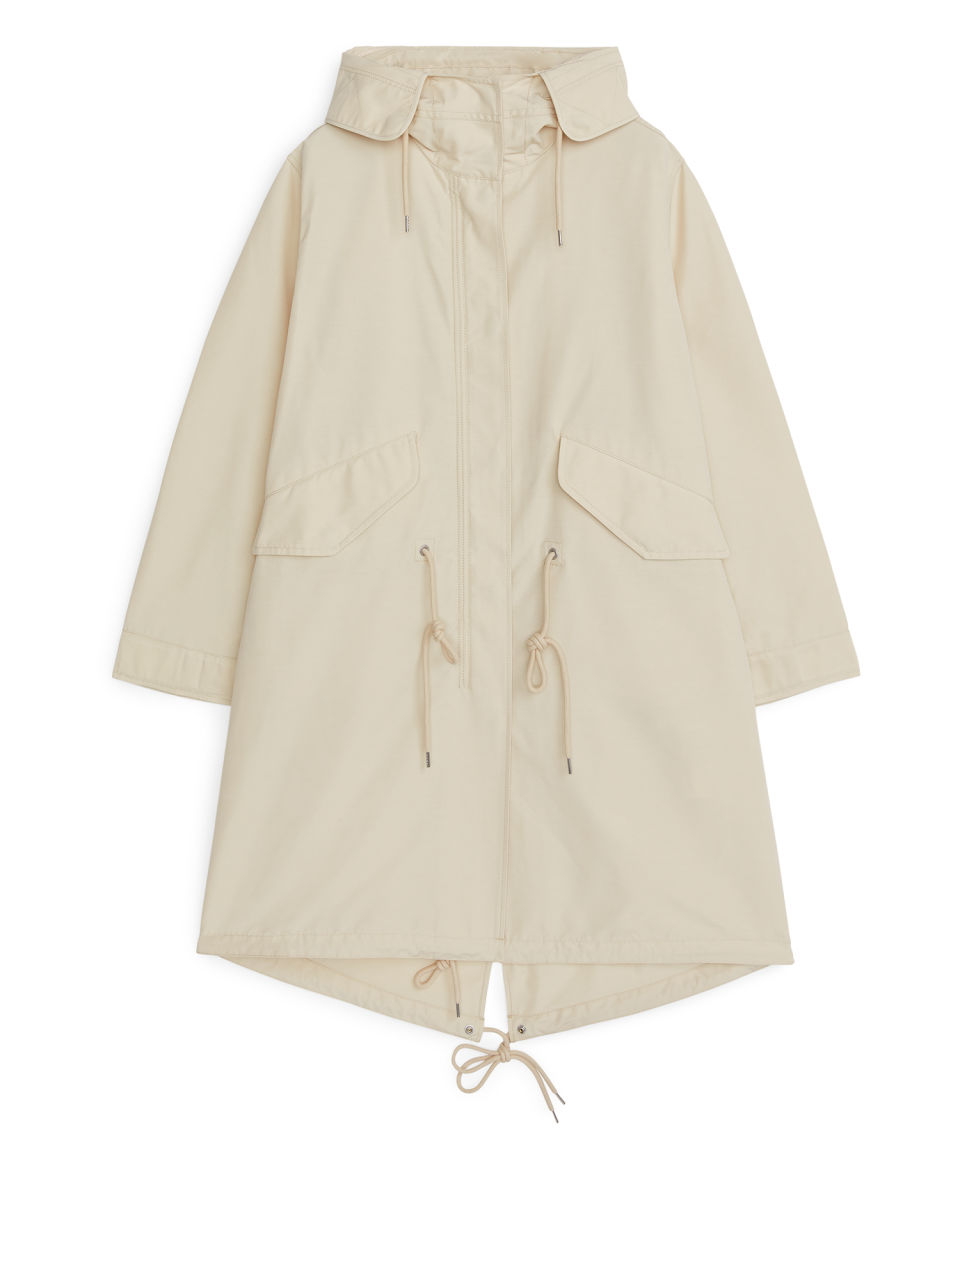 A lightweight   Arket parka   is essential outerwear this spring. I predict showers. And neutrals.